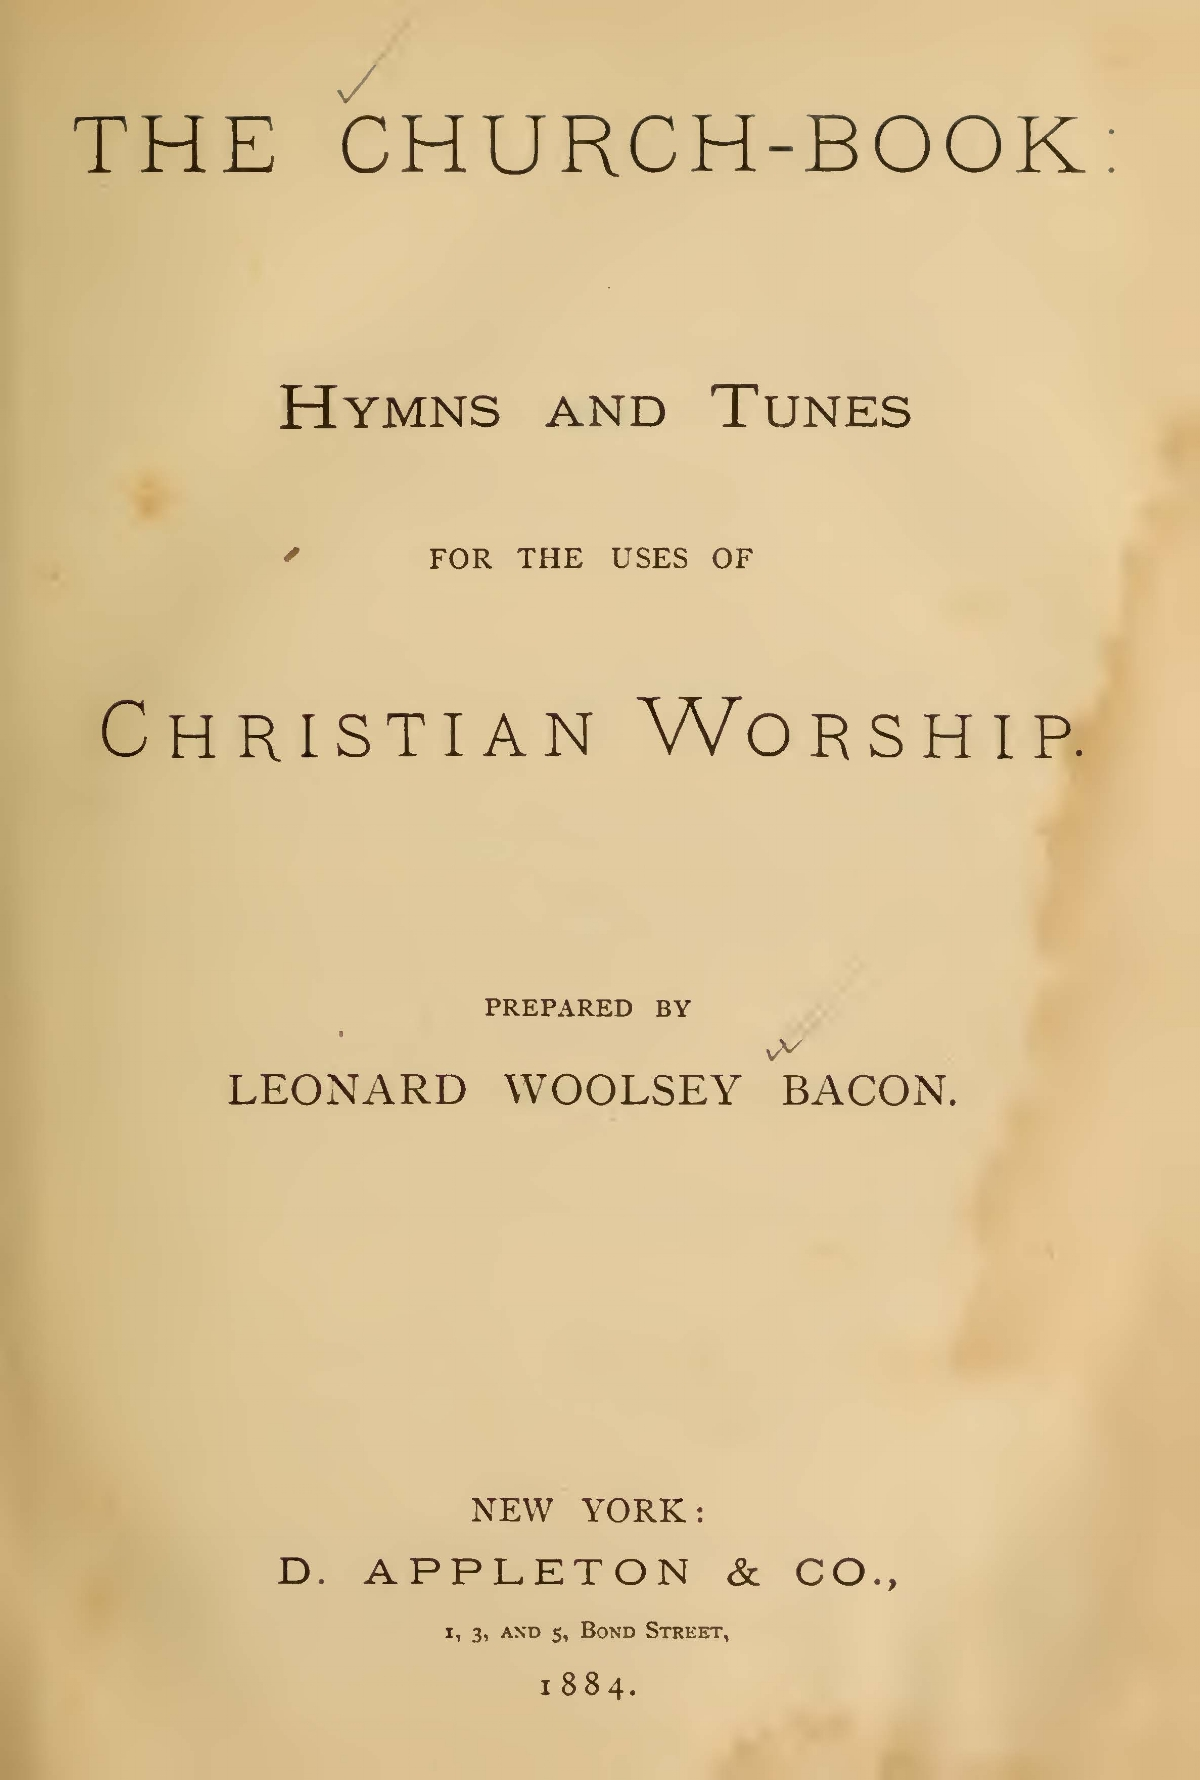 Bacon, Leonard Woolsey, The Church-Book Title Page.jpg